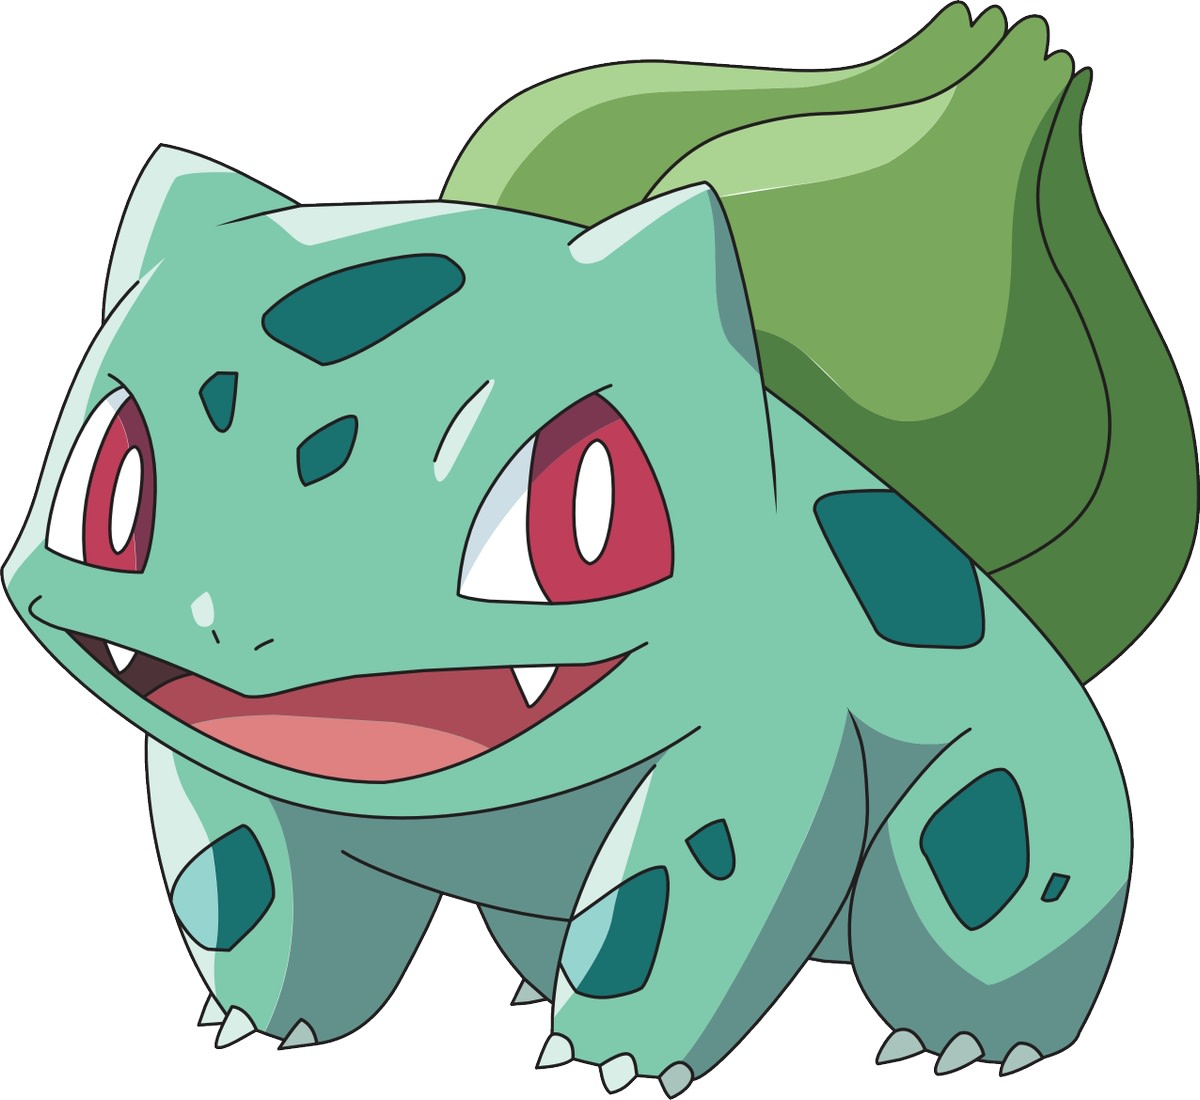 Nicknames for Bulbasaur